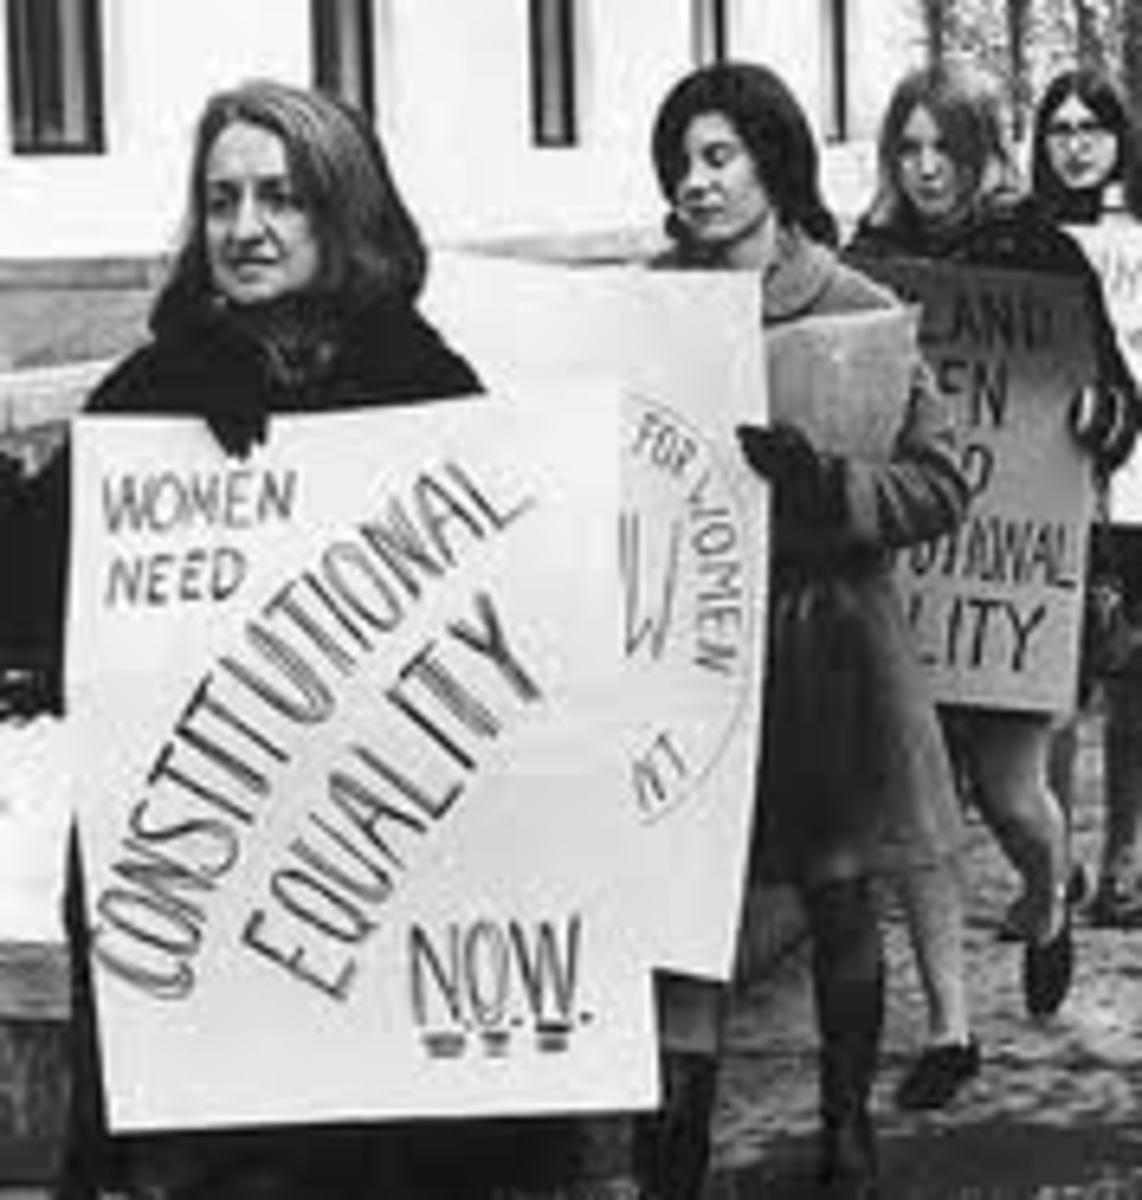 Another factor reversing the trend of large families is the feminist movement. W/the broadening & liberalization of women's roles, women wanted more in life than to be solely wives & mothers.There were increasing career & educational opportunities.